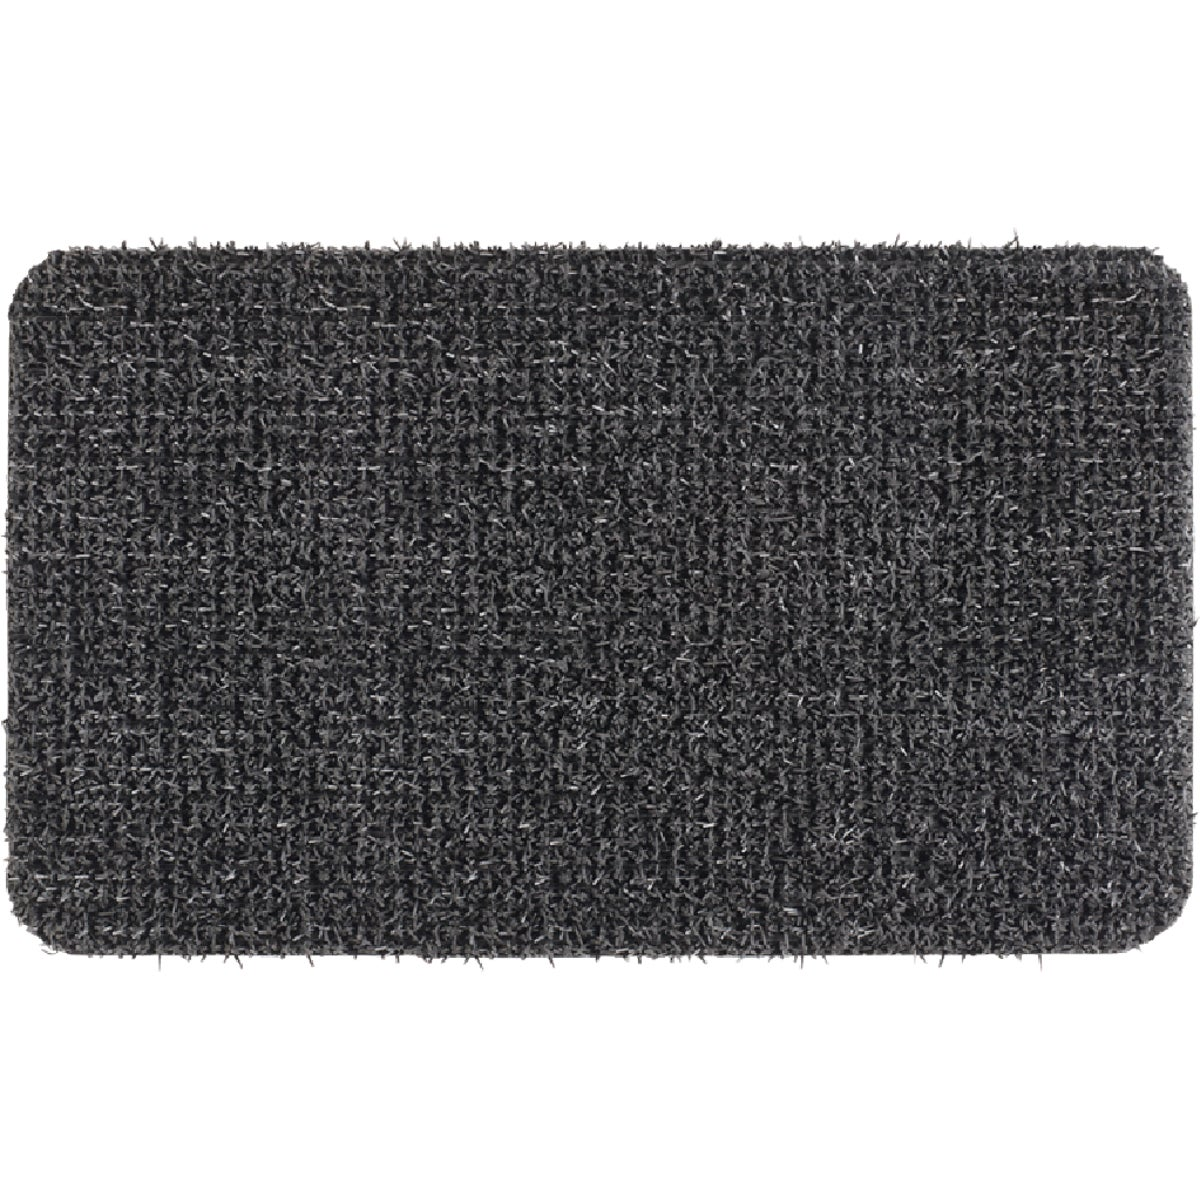 17.5X23.5 CINDER DOORMAT - 10358813 by Grassworx